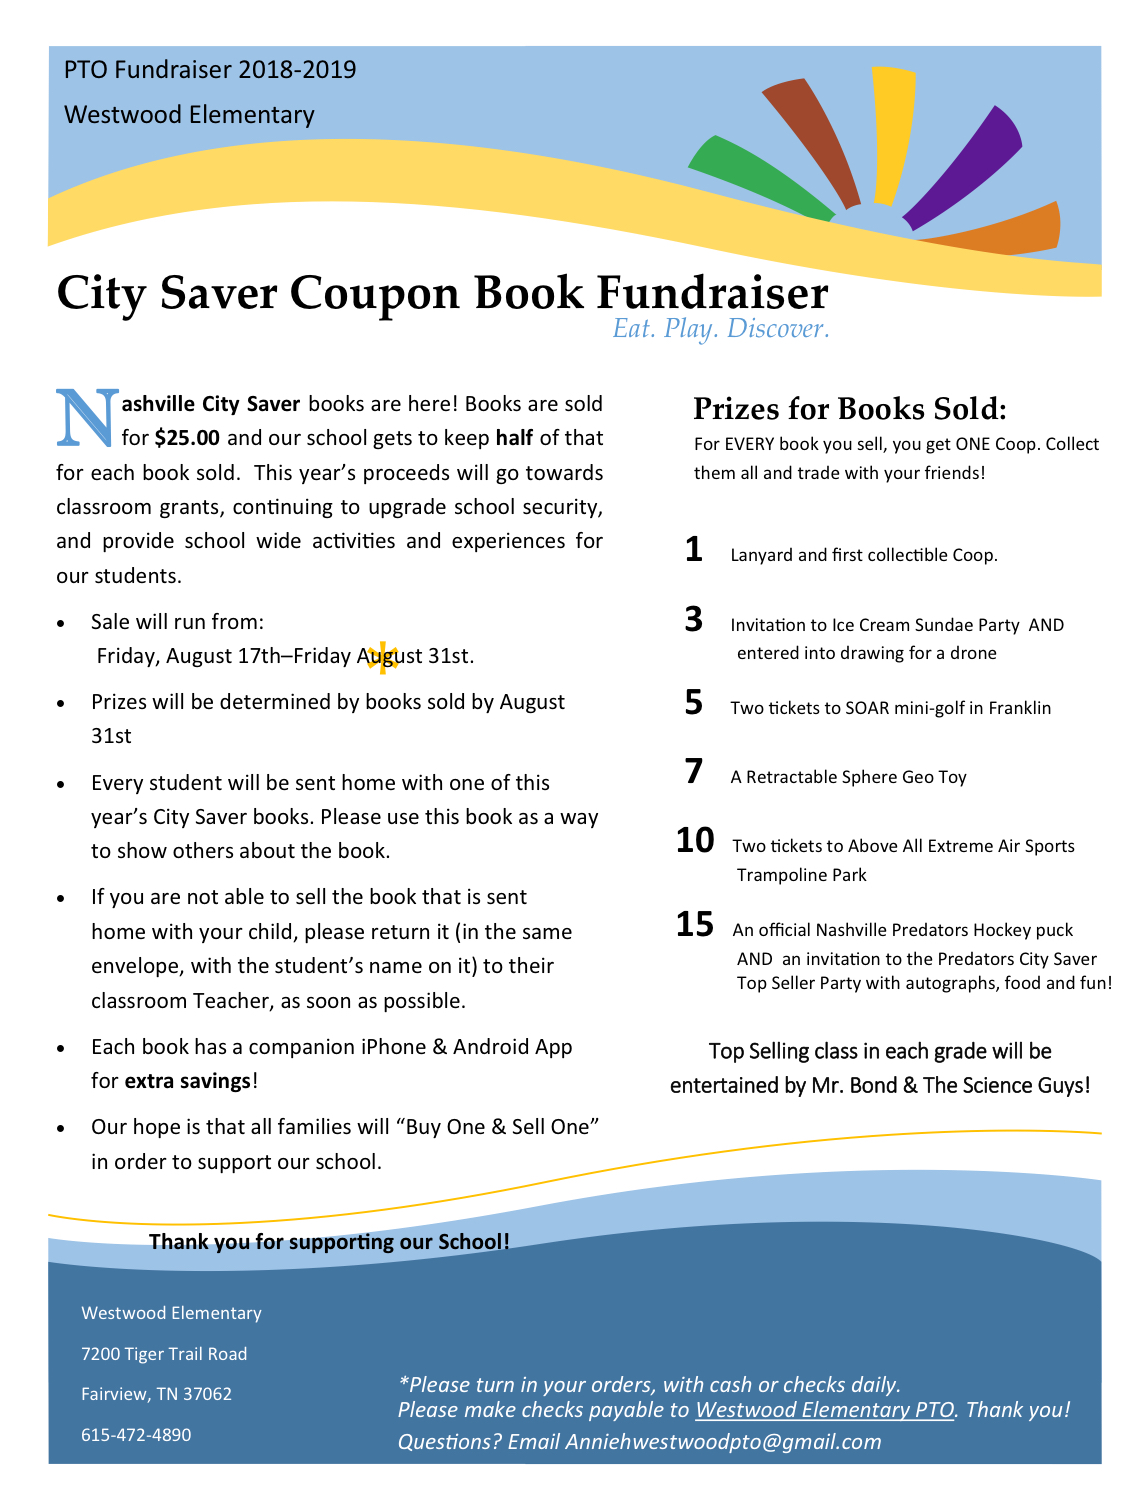 City savers: please see office for paper copy